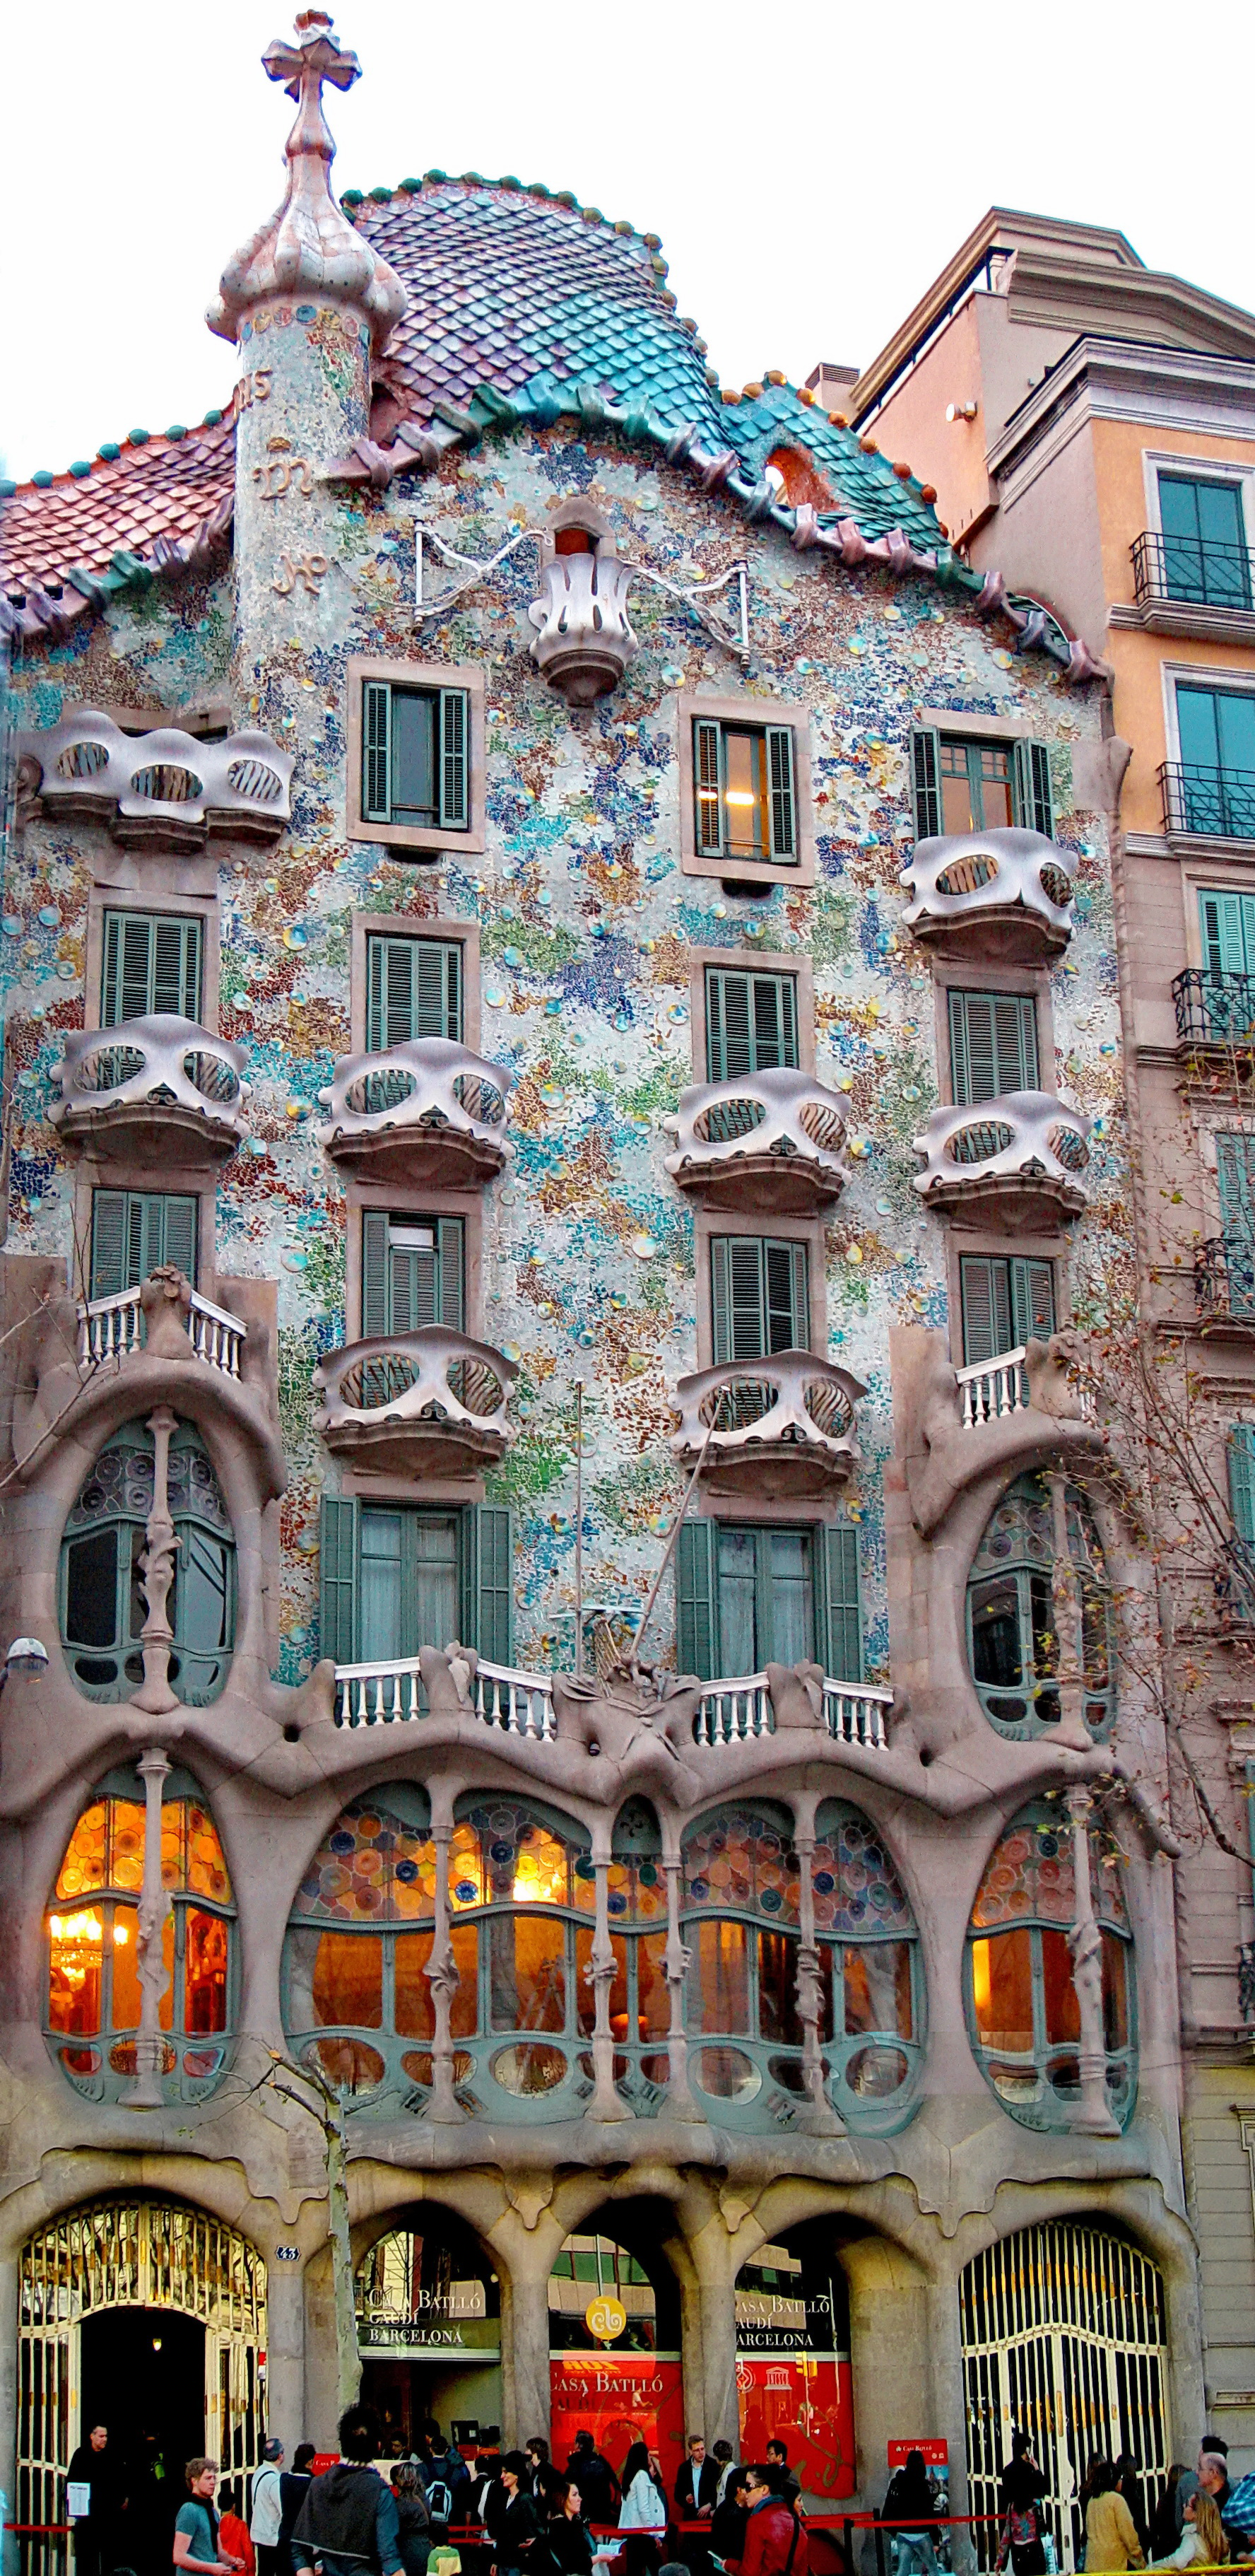 I mean, look at this thing. Casa Batlló, photo by Wikipedia user Amadalvarez, CC BY-SA 3.0